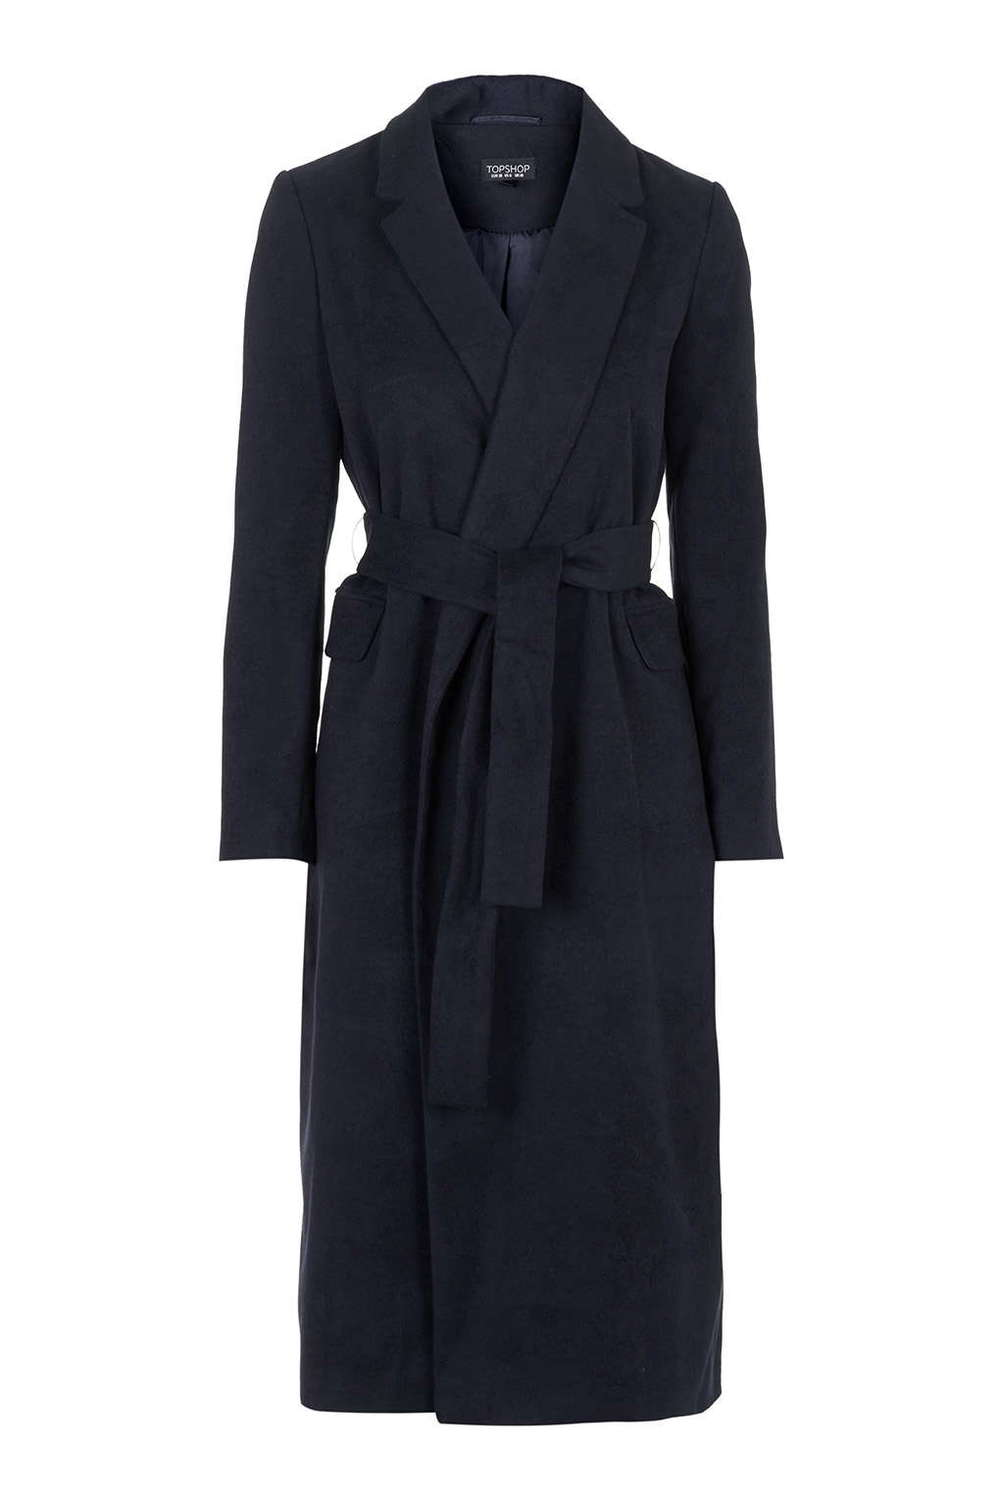 TALL Neat Belted Slouch Coat. Topshop. $150.